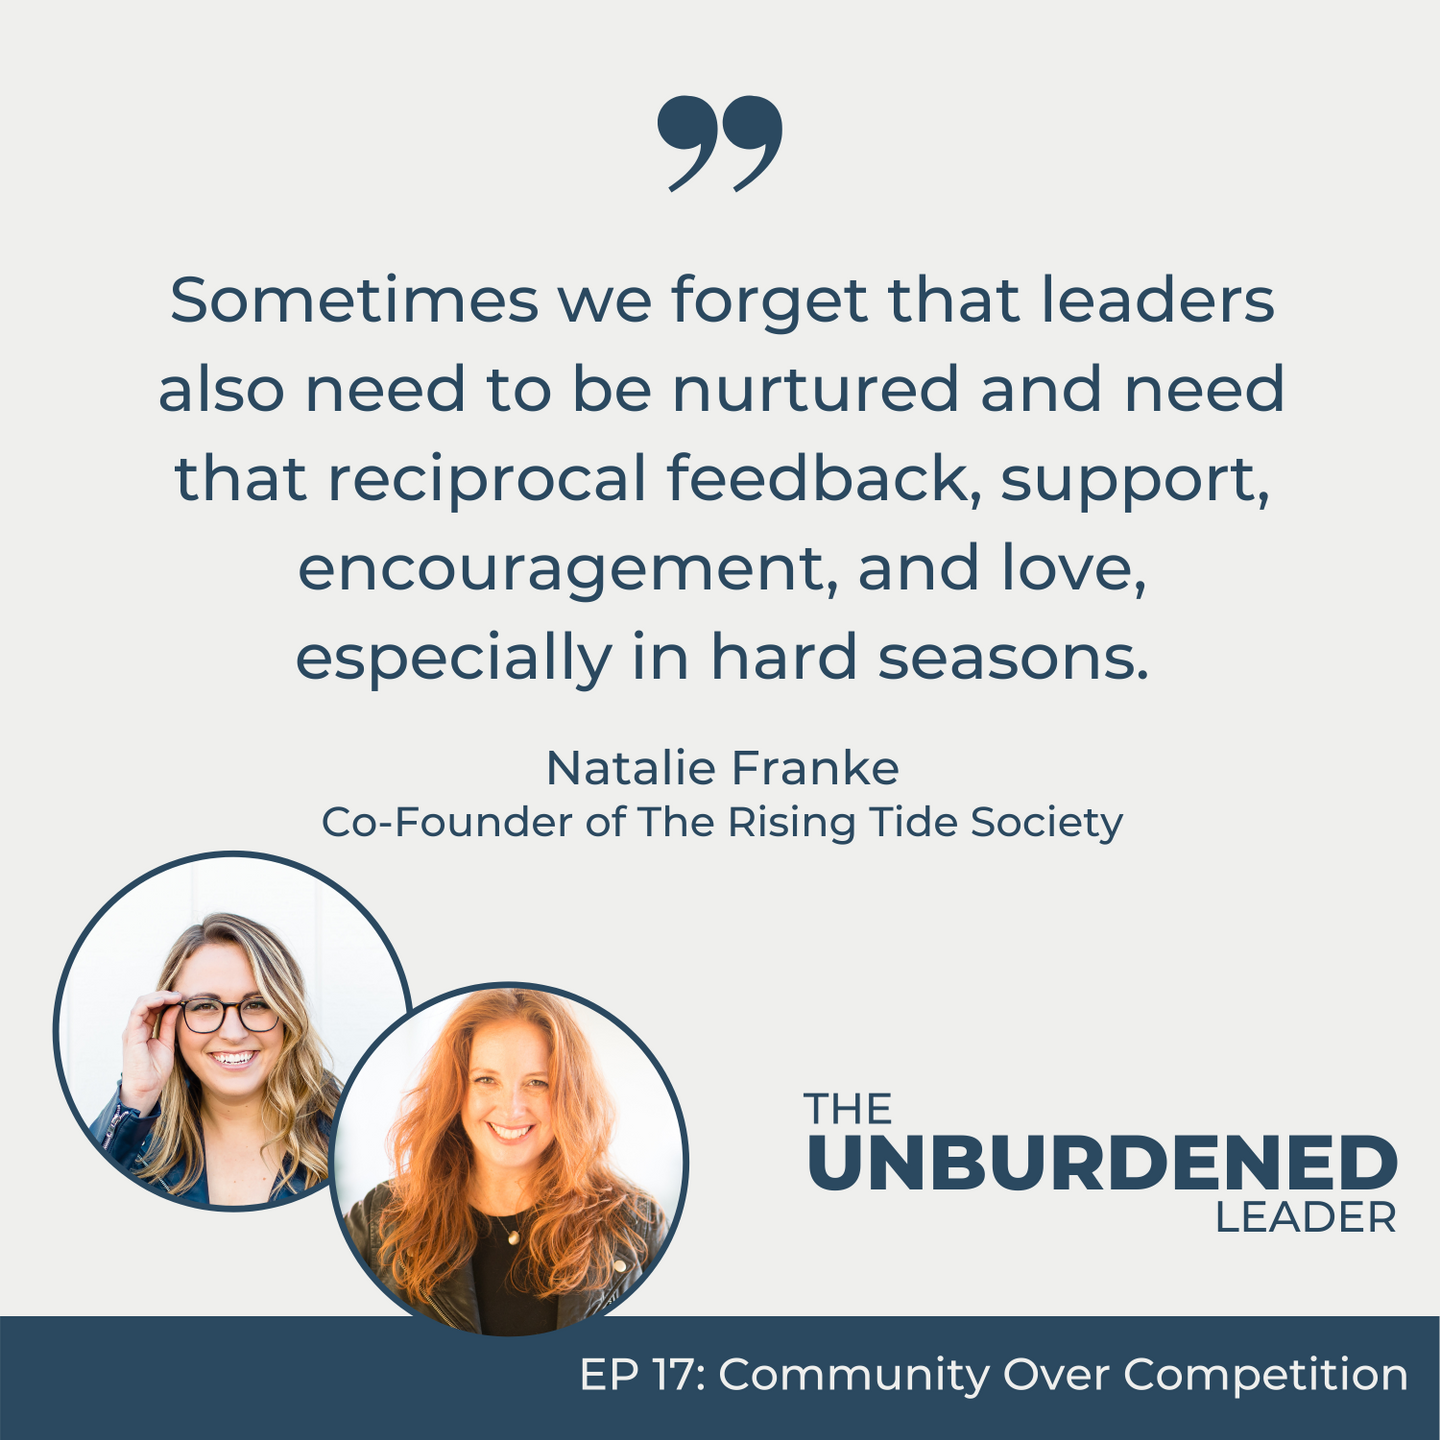 Community Over Competition with Co-Founder of The Rising Tide Society Natalie Franke